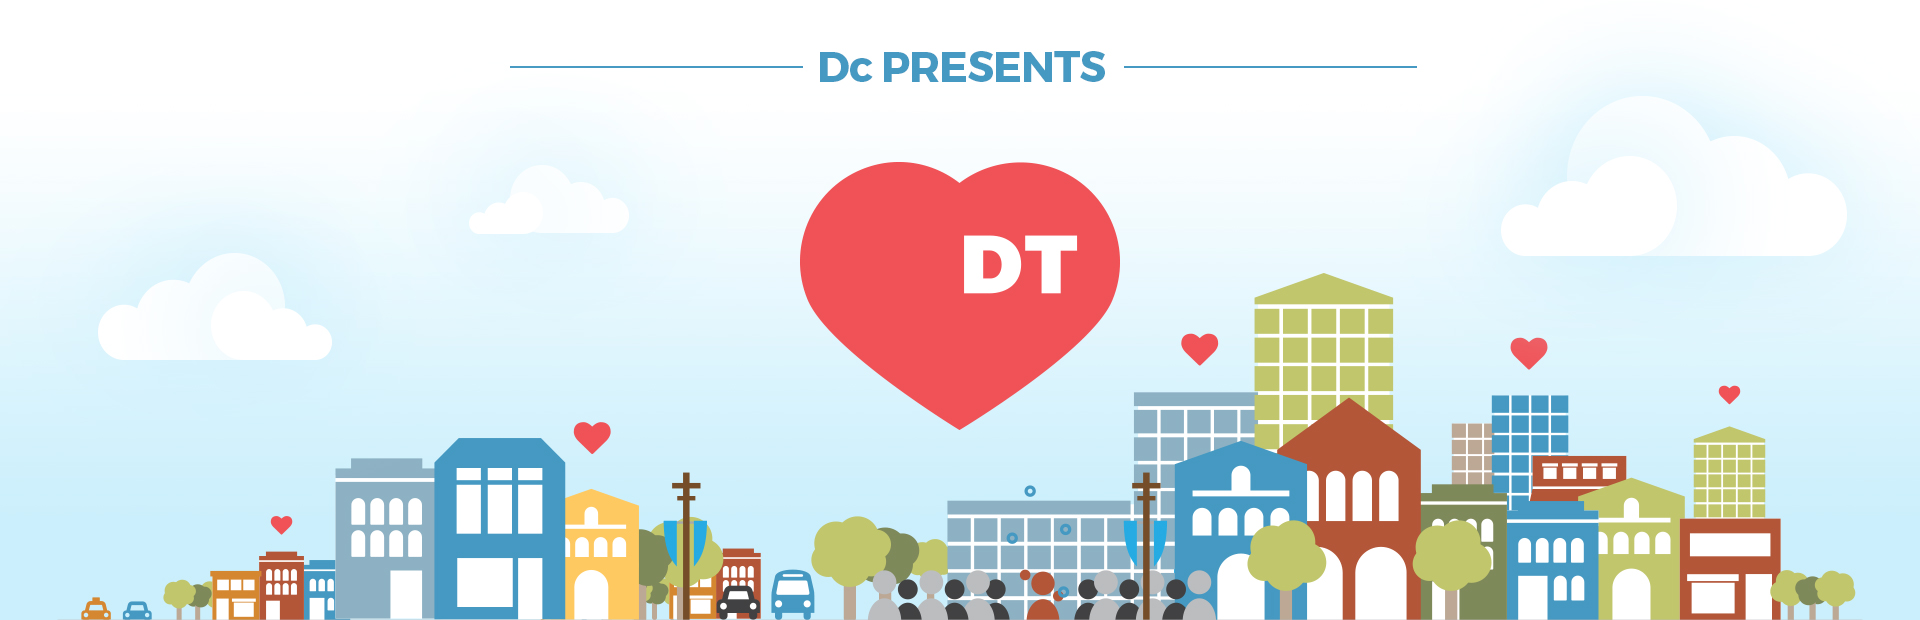 Dc Presents: How We Get Down(town)